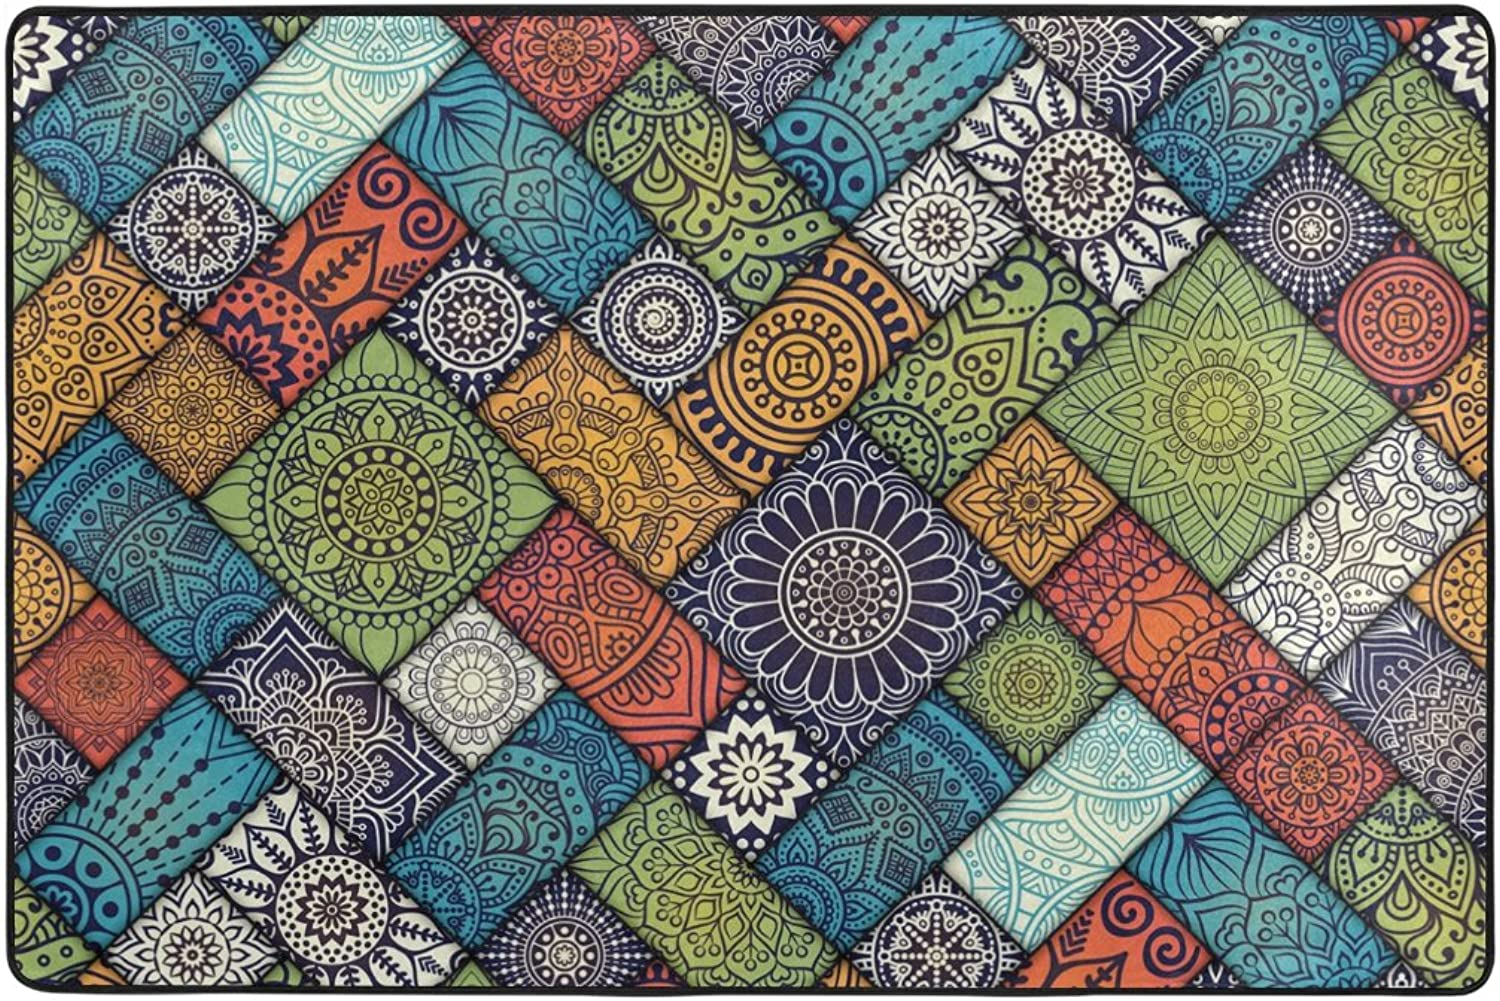 Diagonal Floral Pattern colorful Mandalas Grid Area Rugs Door Mat 6'x4' Polyester Nonslip Entrance Home Decor for Bedroom Living Room Mats Front Indoor Outdoor